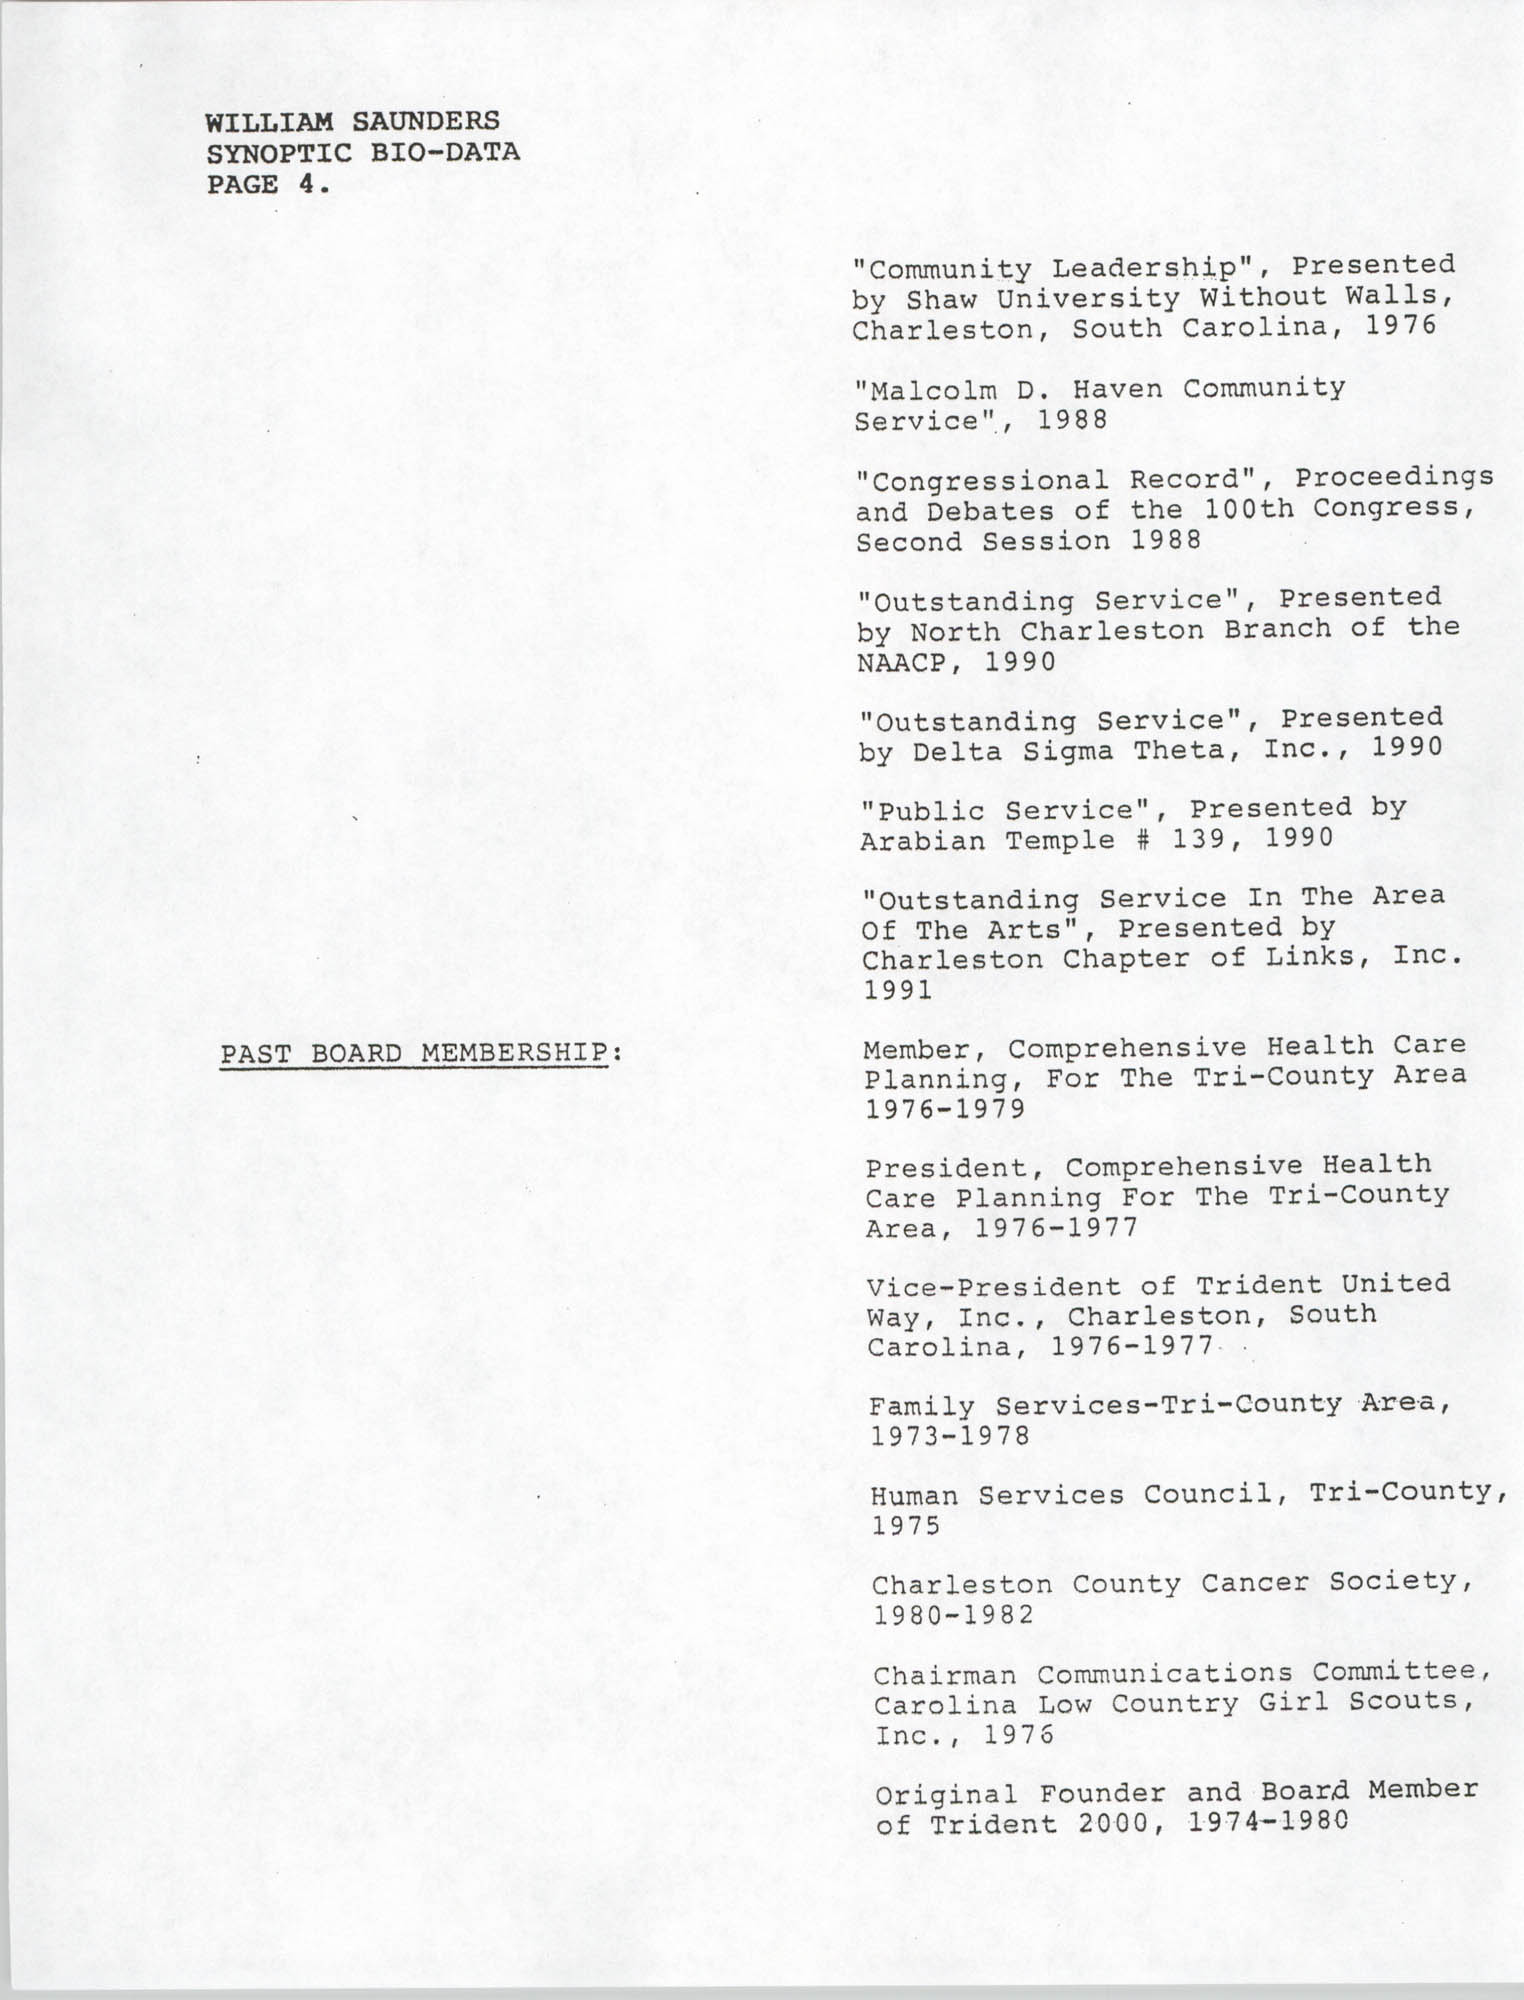 Synopitic Bio-Data on William Saunders, Page 4